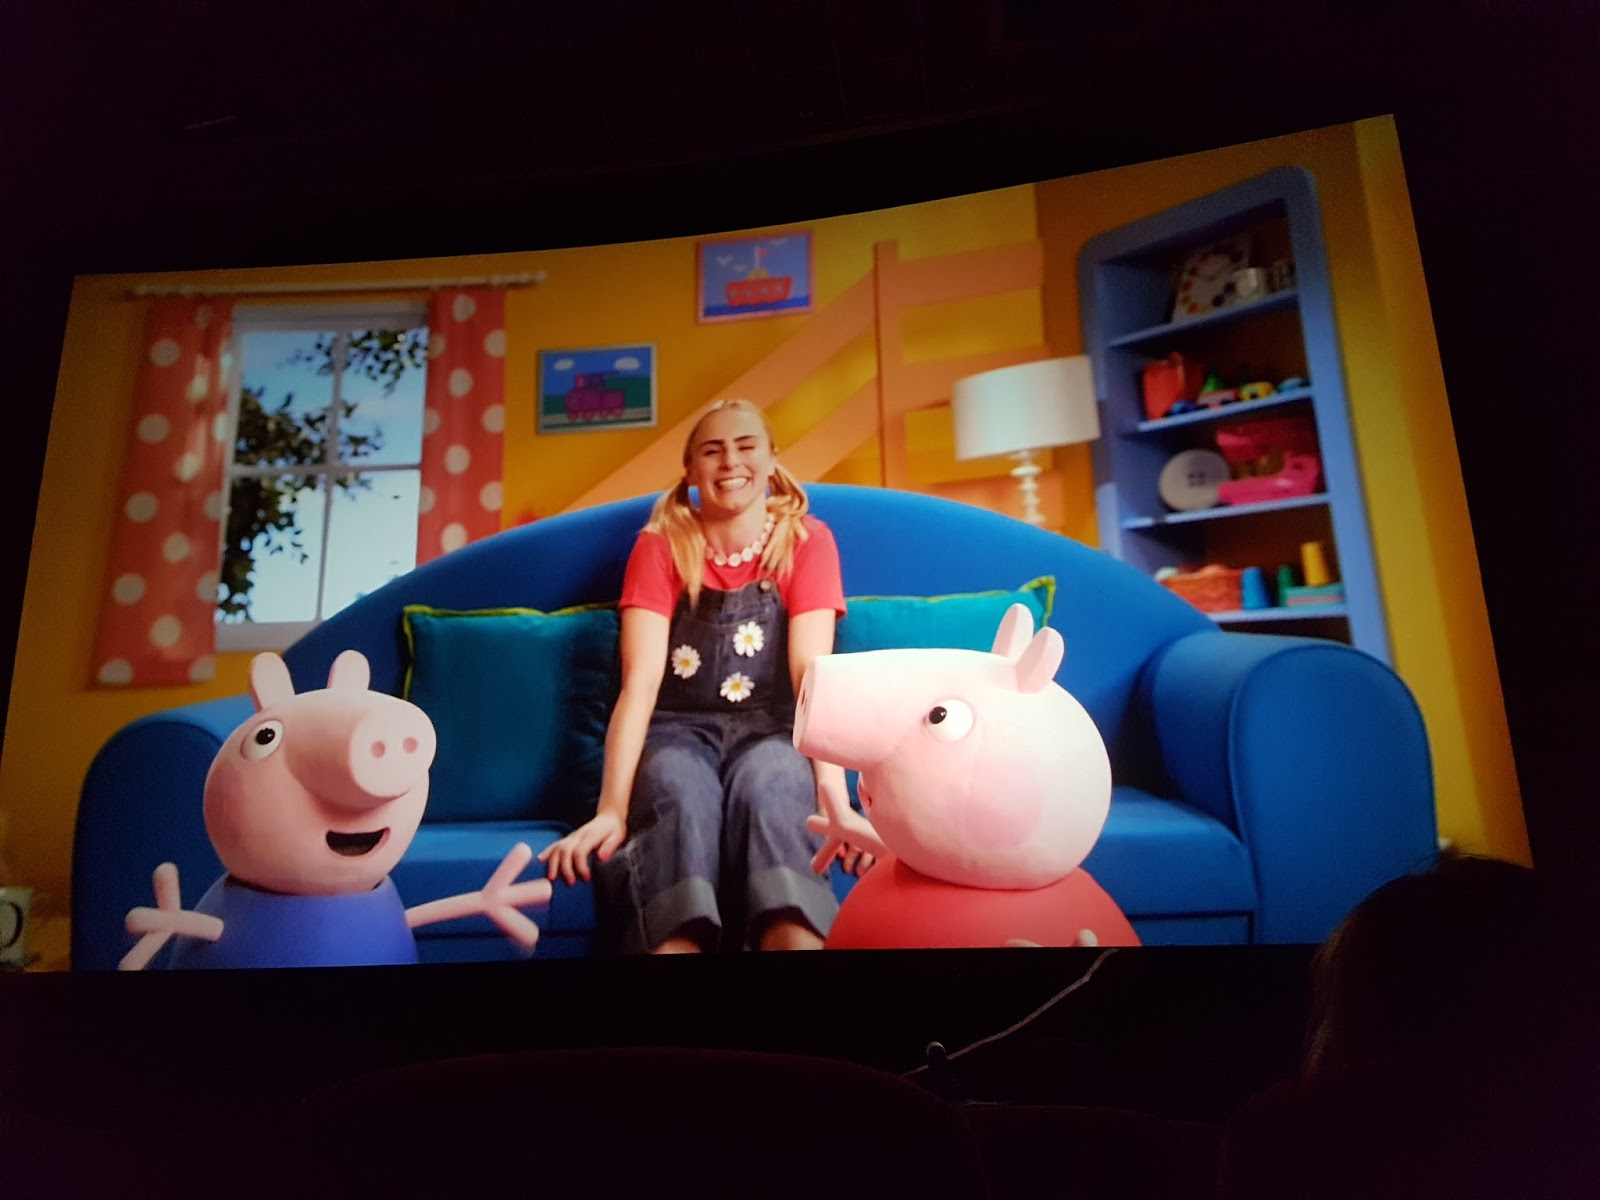 peppa pig film daisy the presenter on screen